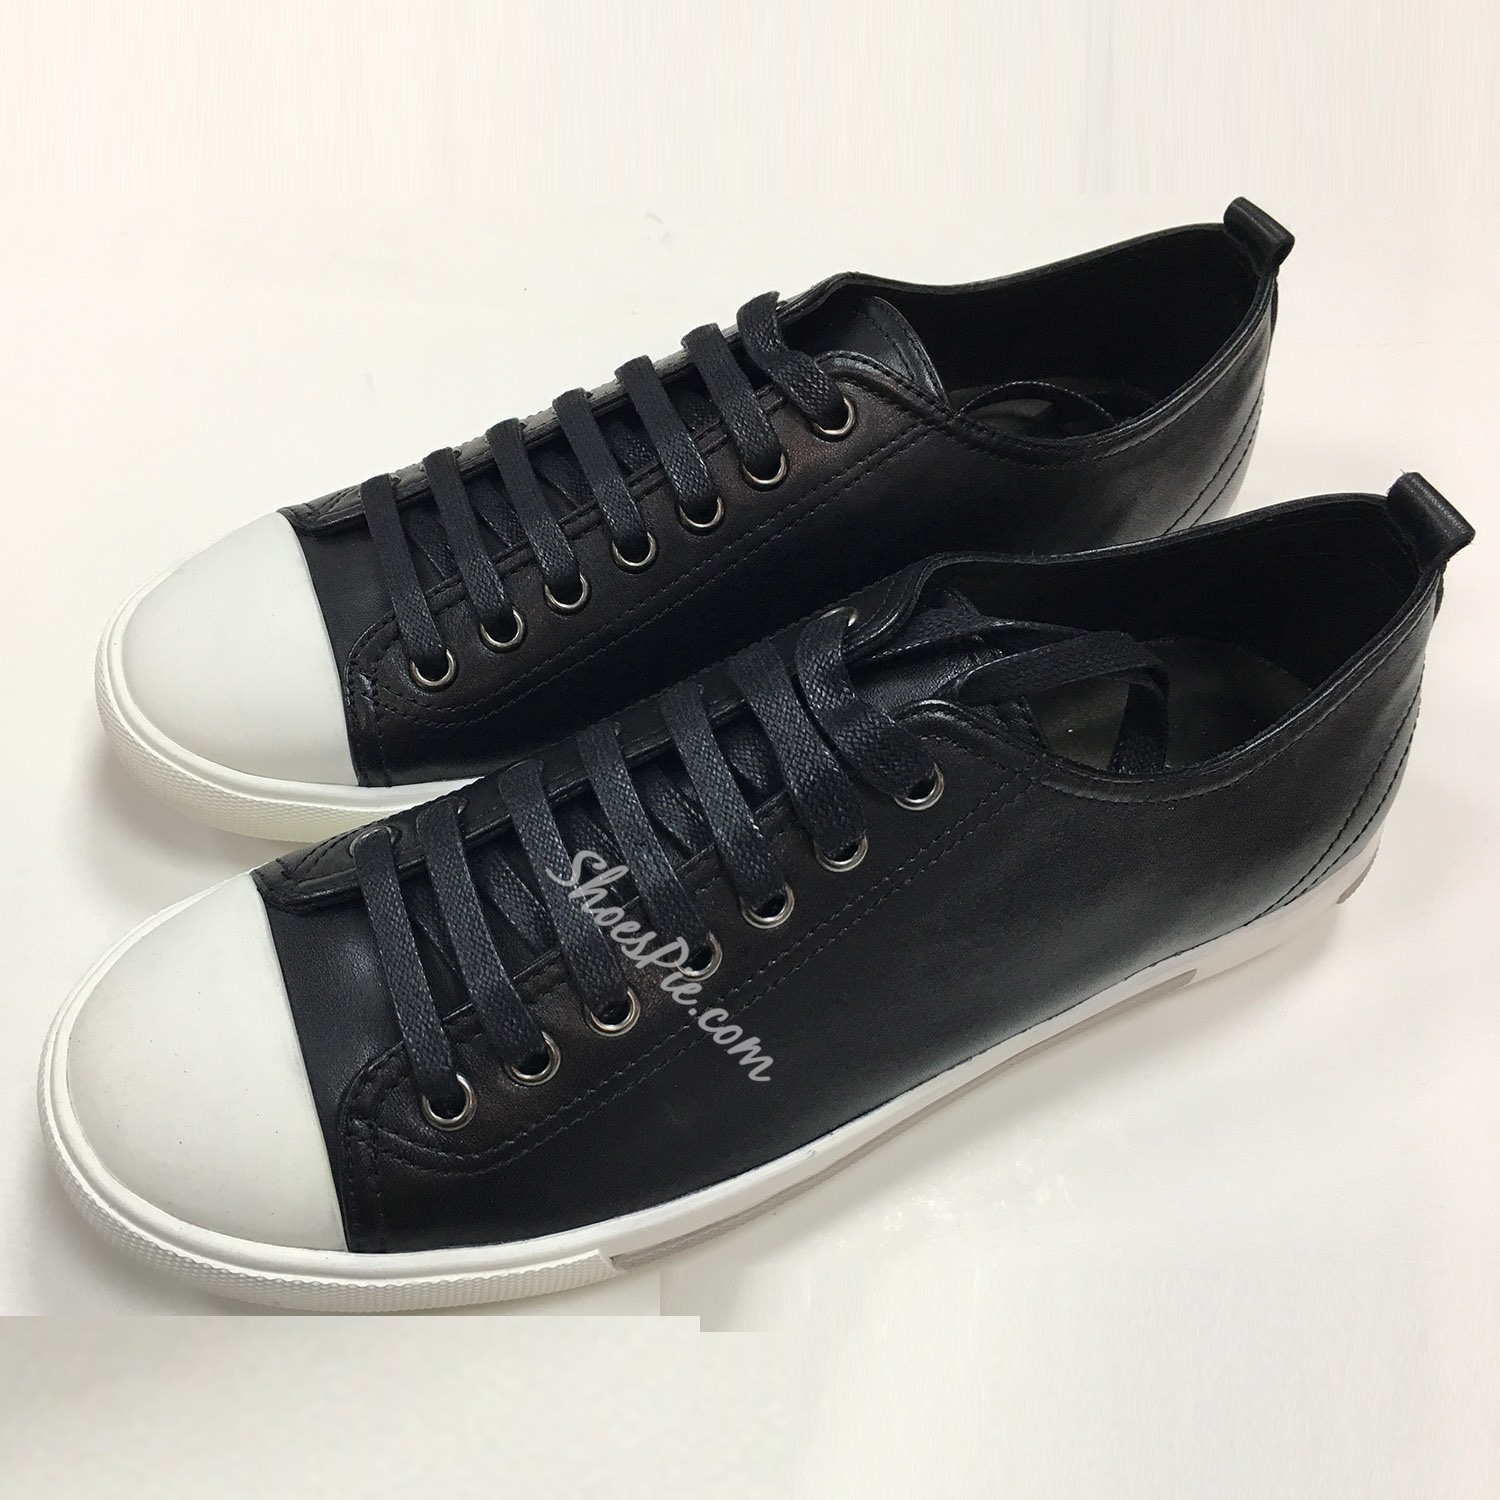 Lace-Up Skate Shoes Men's Sneakers